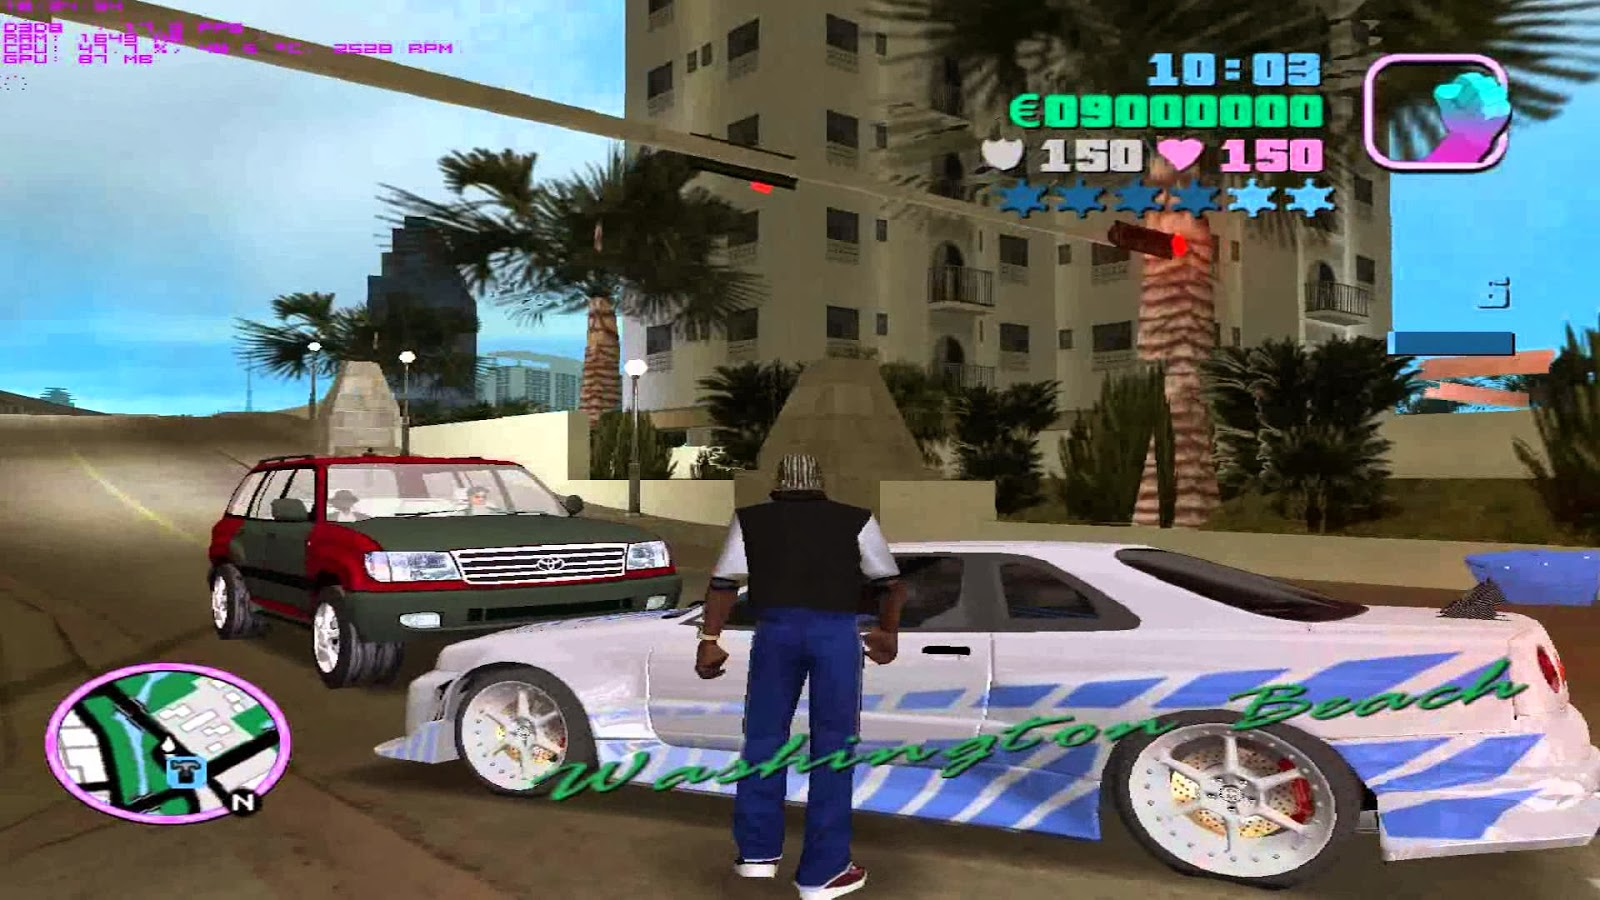 Gta vice city part 1 game download: knc coin forum jobs.